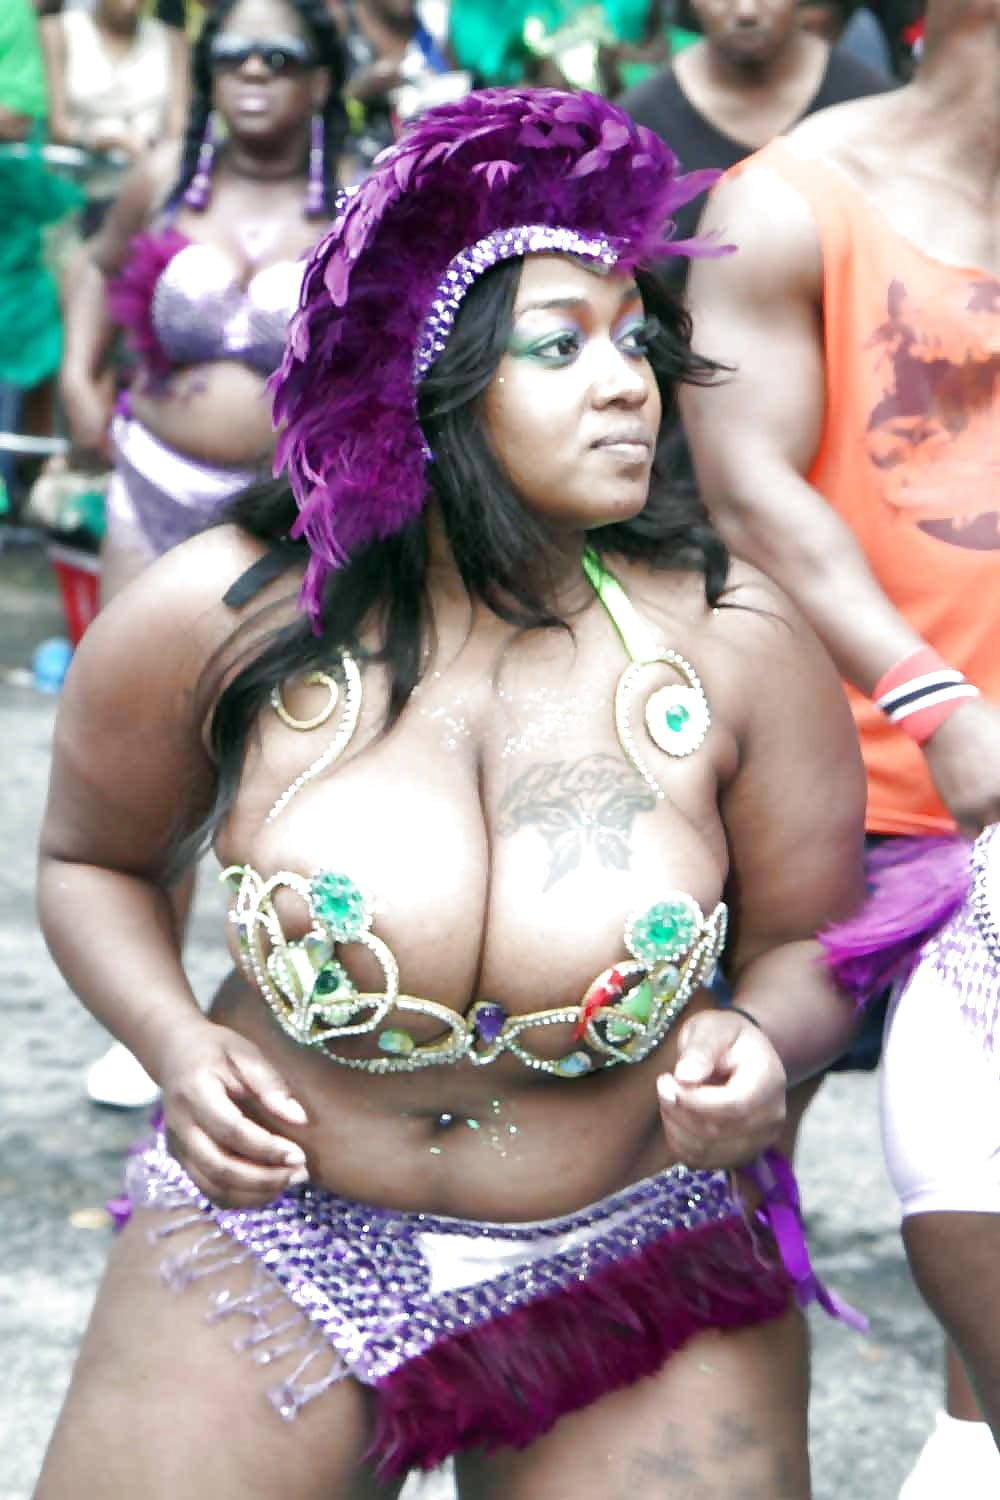 great-brazilian-tits-nude-pictures-native-america-lady-sex